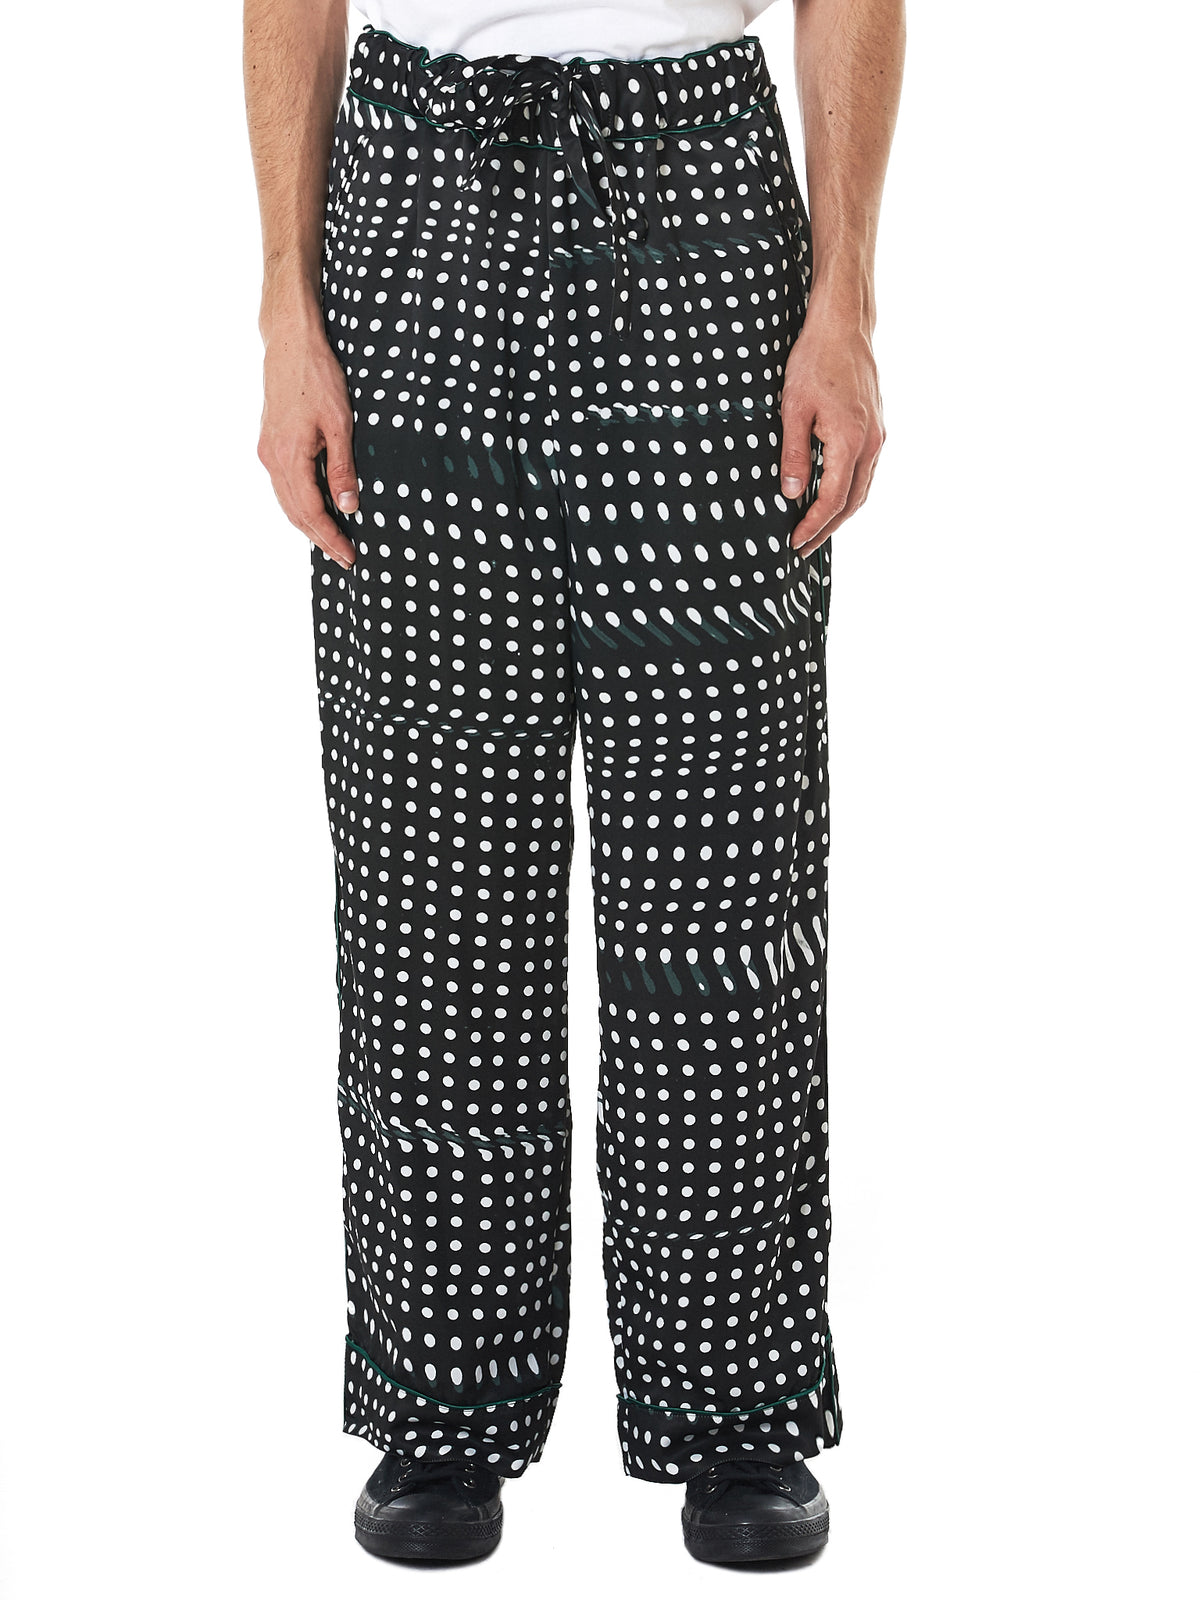 Piped Dotted Trousers (RB-PT-M17-BLACK)